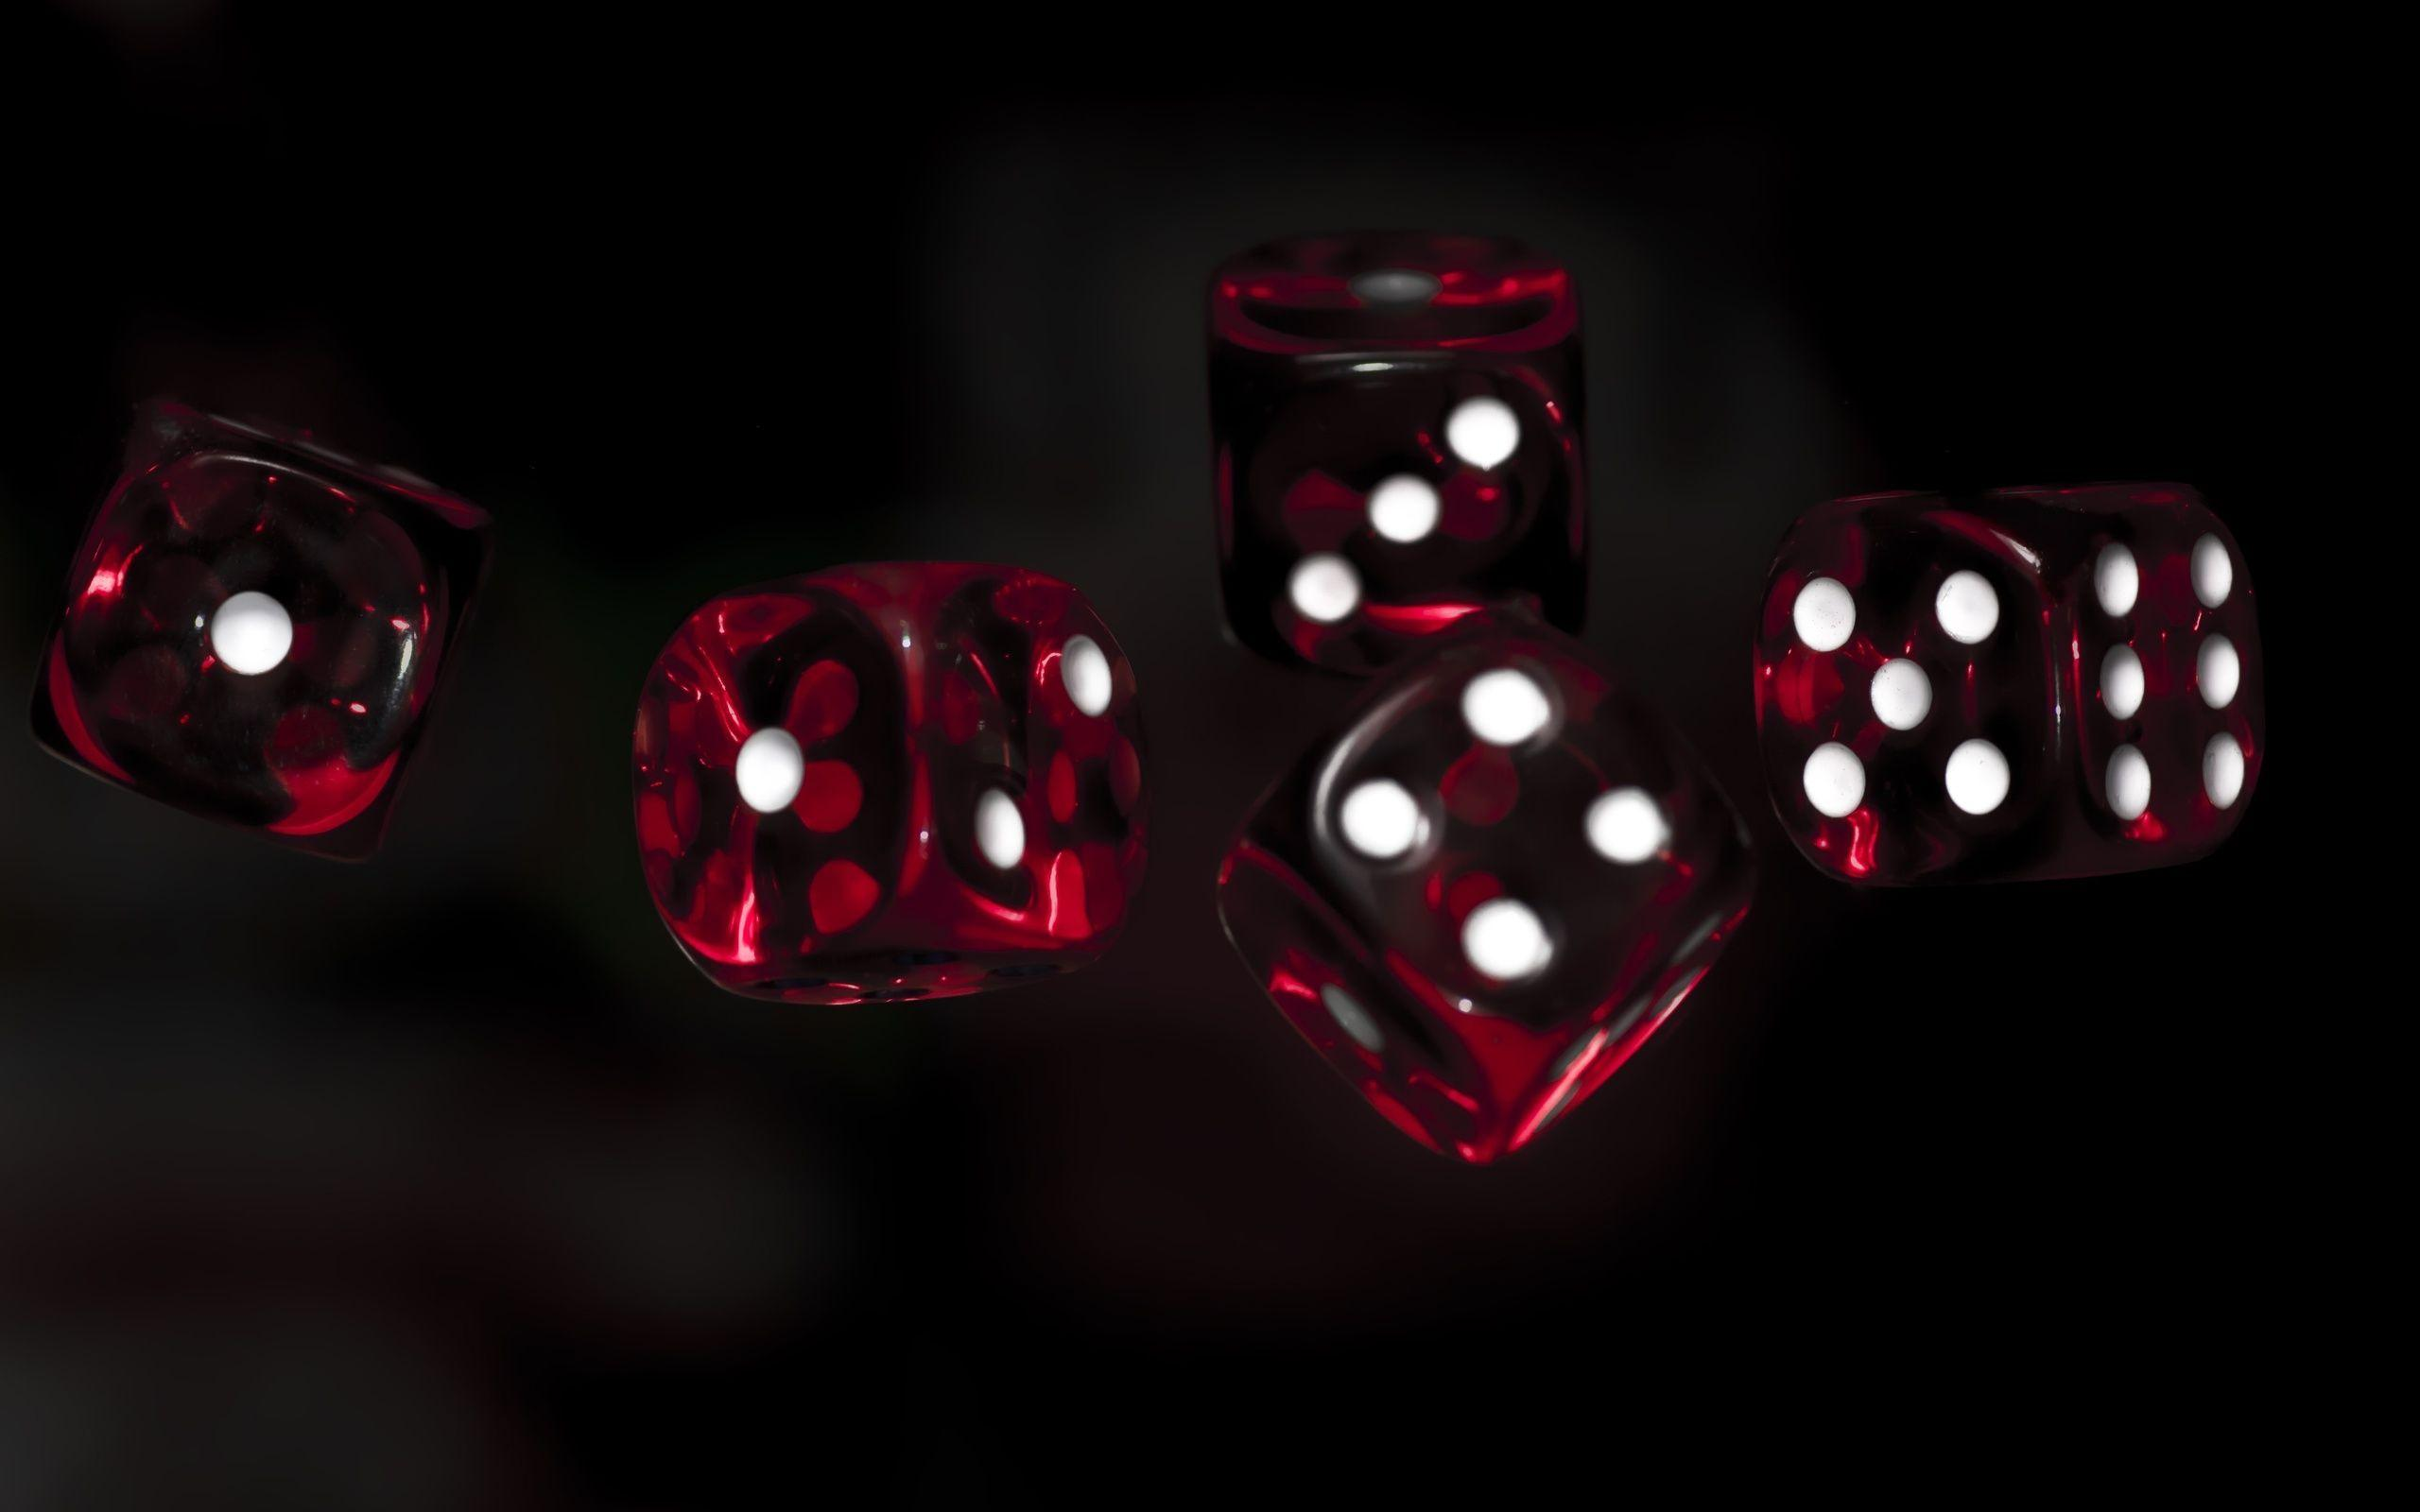 Dice Wallpapers Wallpaper Cave HD Wallpapers Download Free Images Wallpaper [1000image.com]